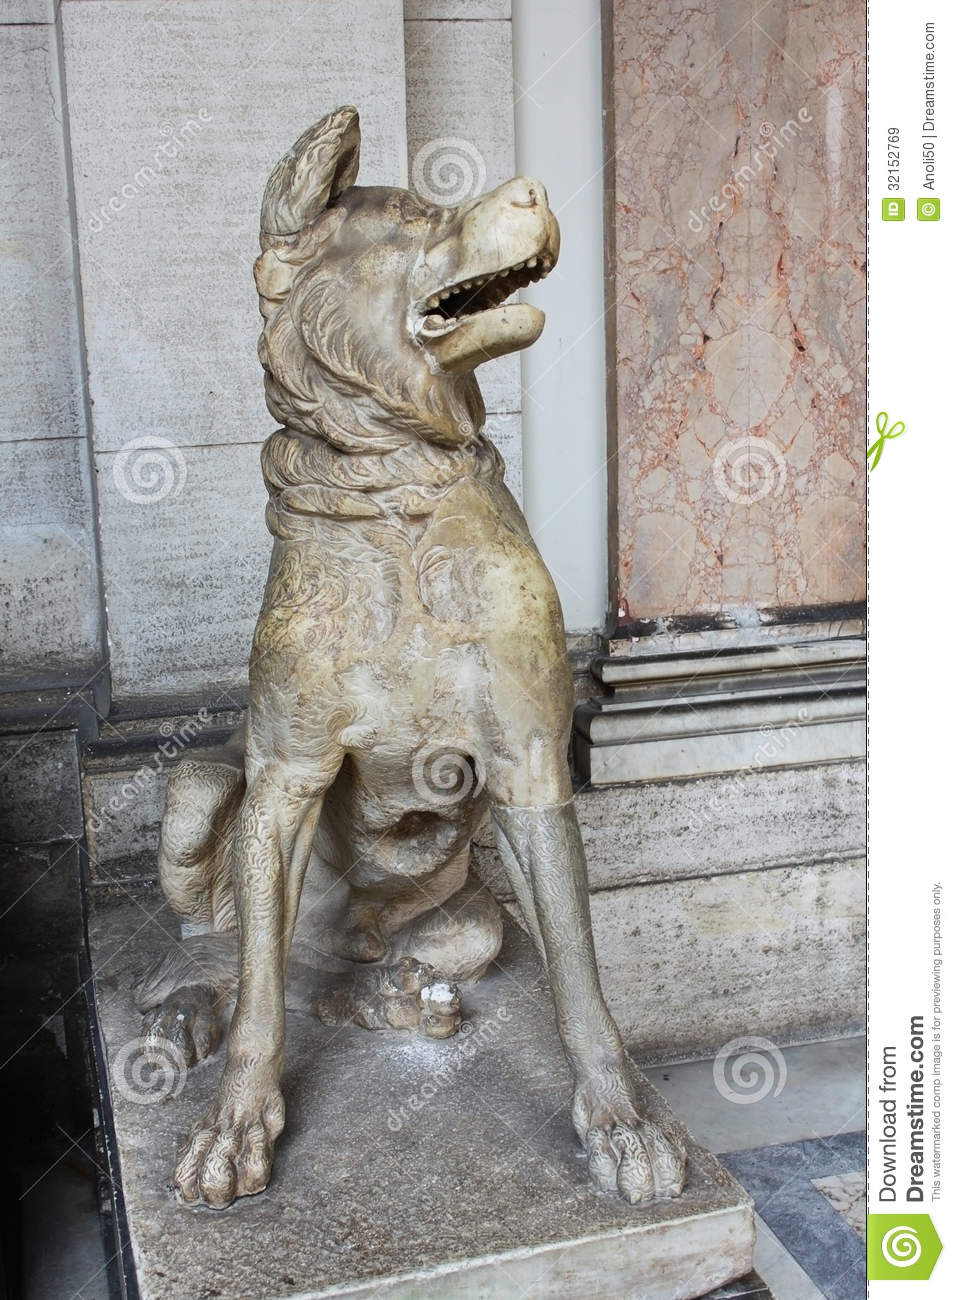 dog sculpture royalty free stock images